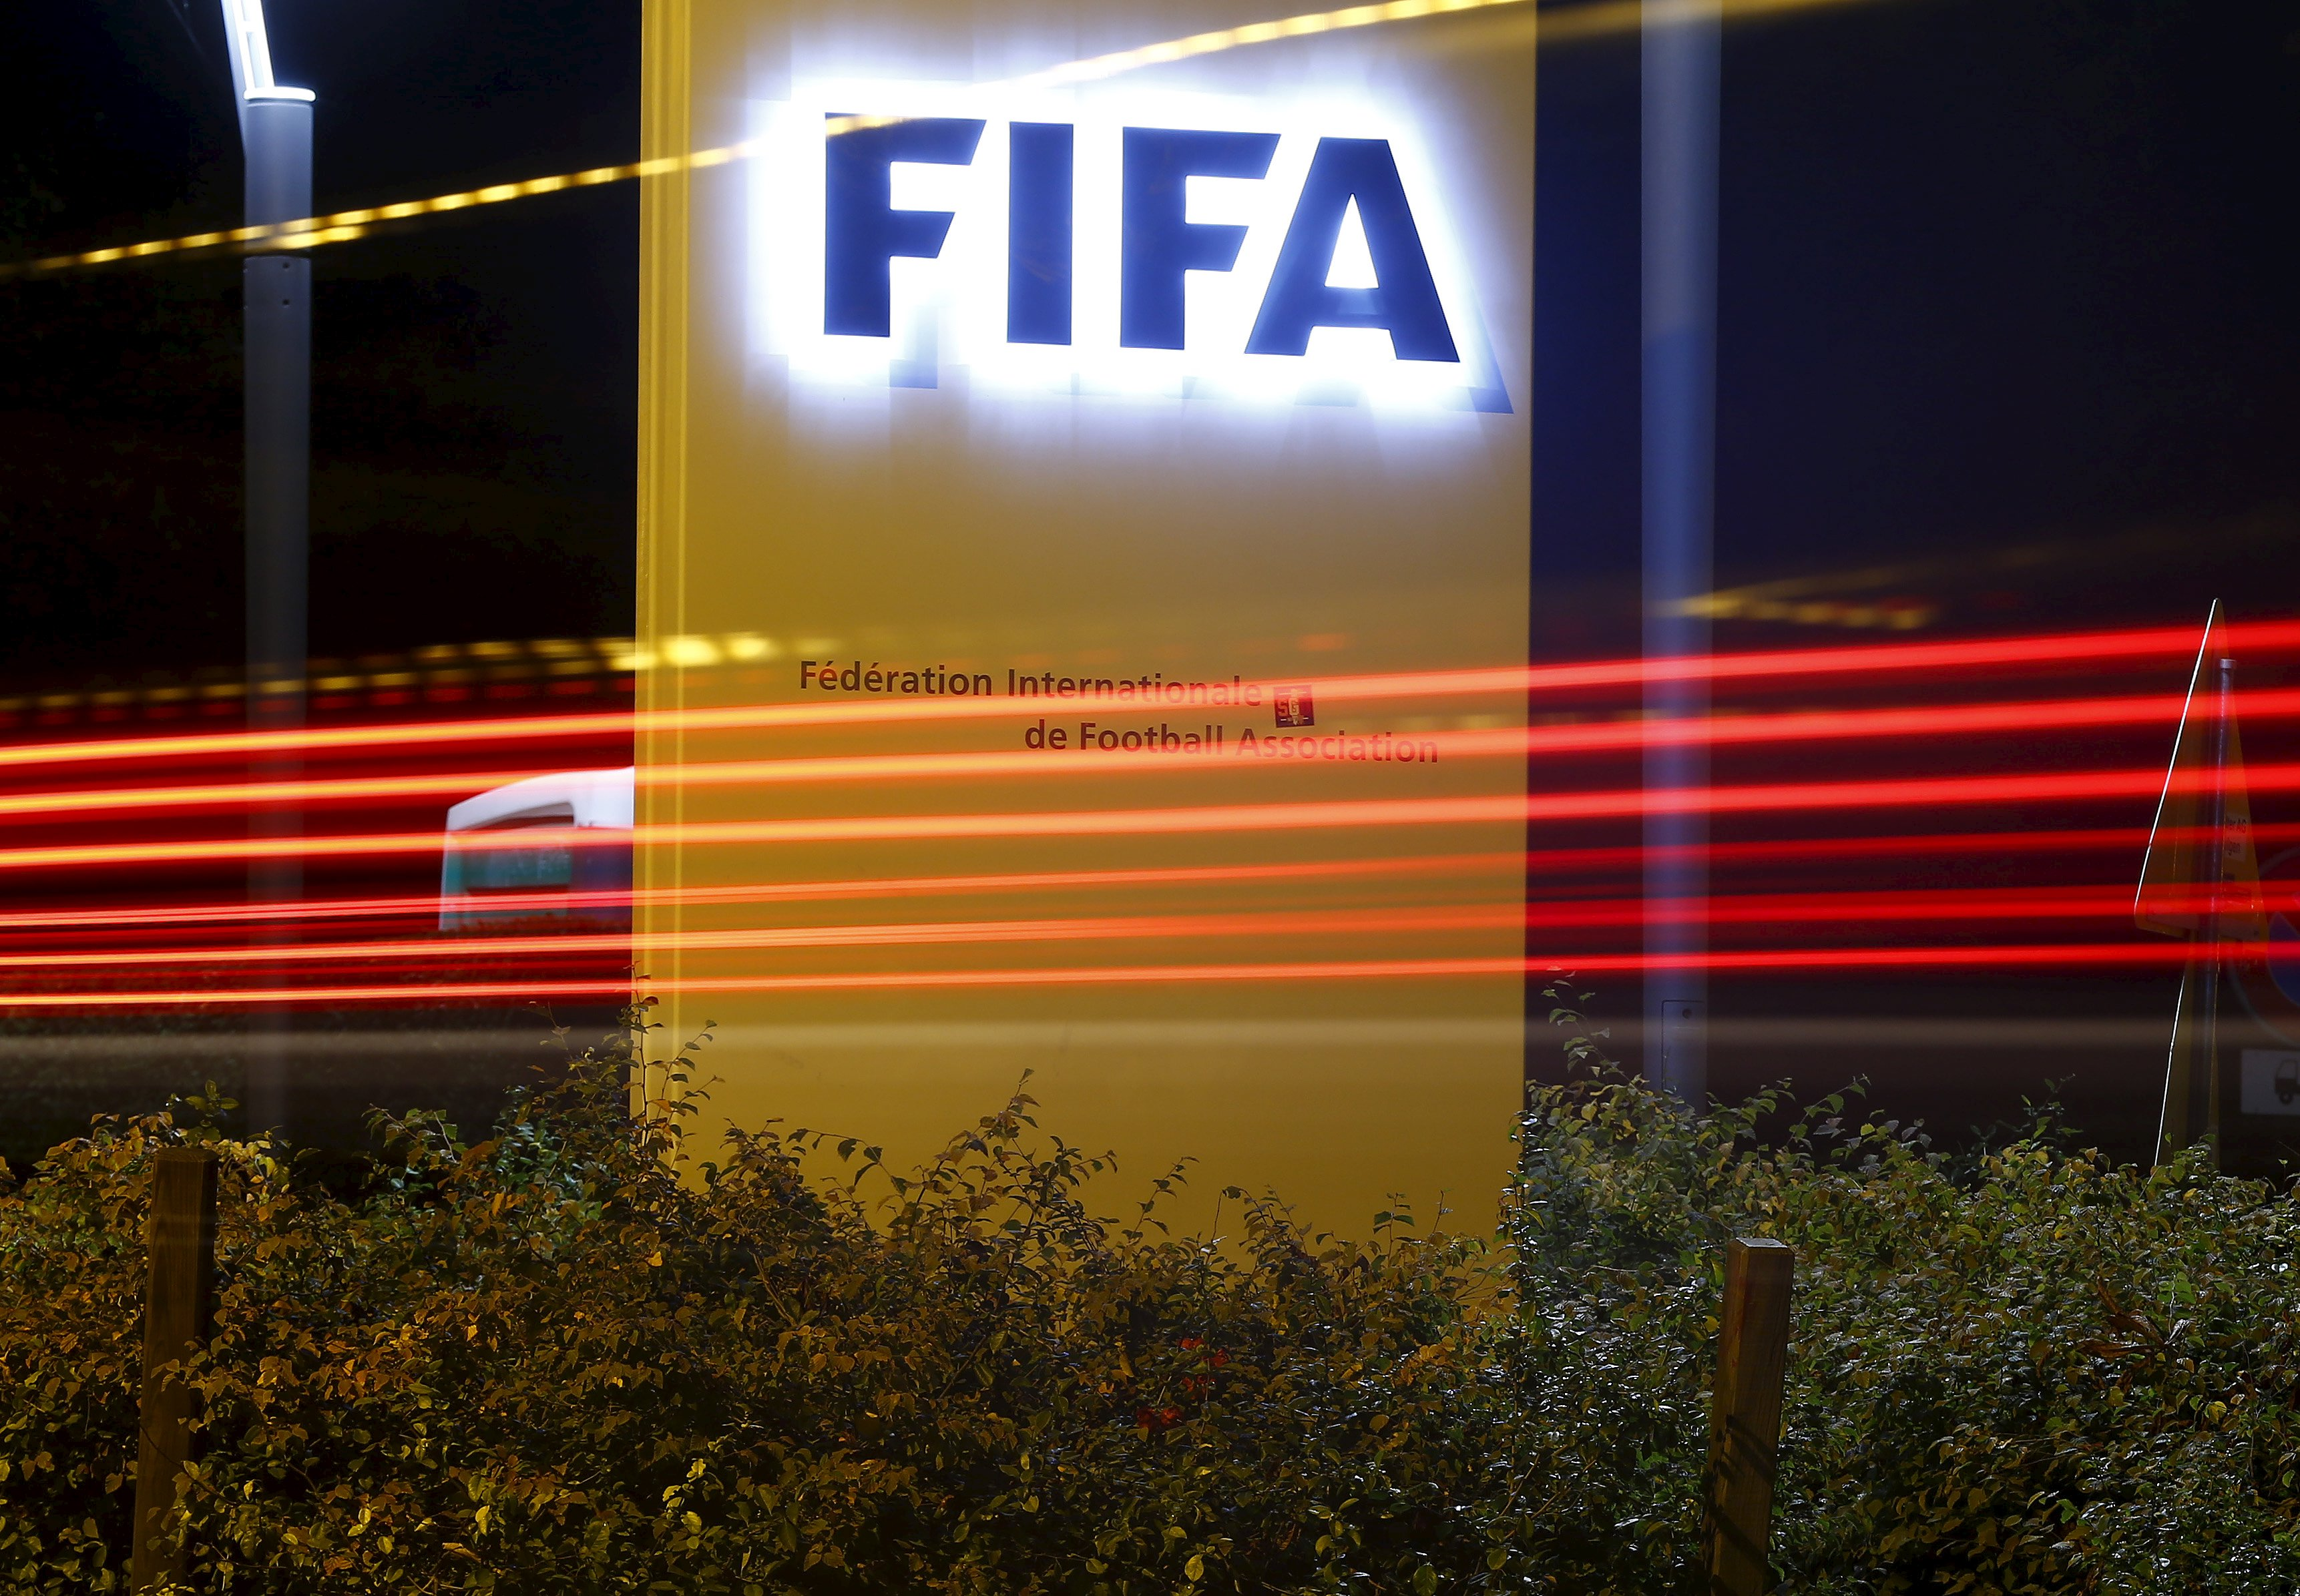 The FIFA logo is seen outside their headquarters in Zurich October 7, 2015. FIFA president Sepp Blatter faces a 90 day suspension from football if the governing body's Ethics judge backs a prosecutor's recommendation, a close friend and former advisor to Blatter told Reuters on Wednesday. Blatter's long-term confidant Klaus Stoehlker said the decision by judge Hans-Joachim Eckert was expected by Friday. Reuters was unable to confirm the information with FIFA's Ethics Committee or with FIFA itself. REUTERS/Arnd Wiegmann